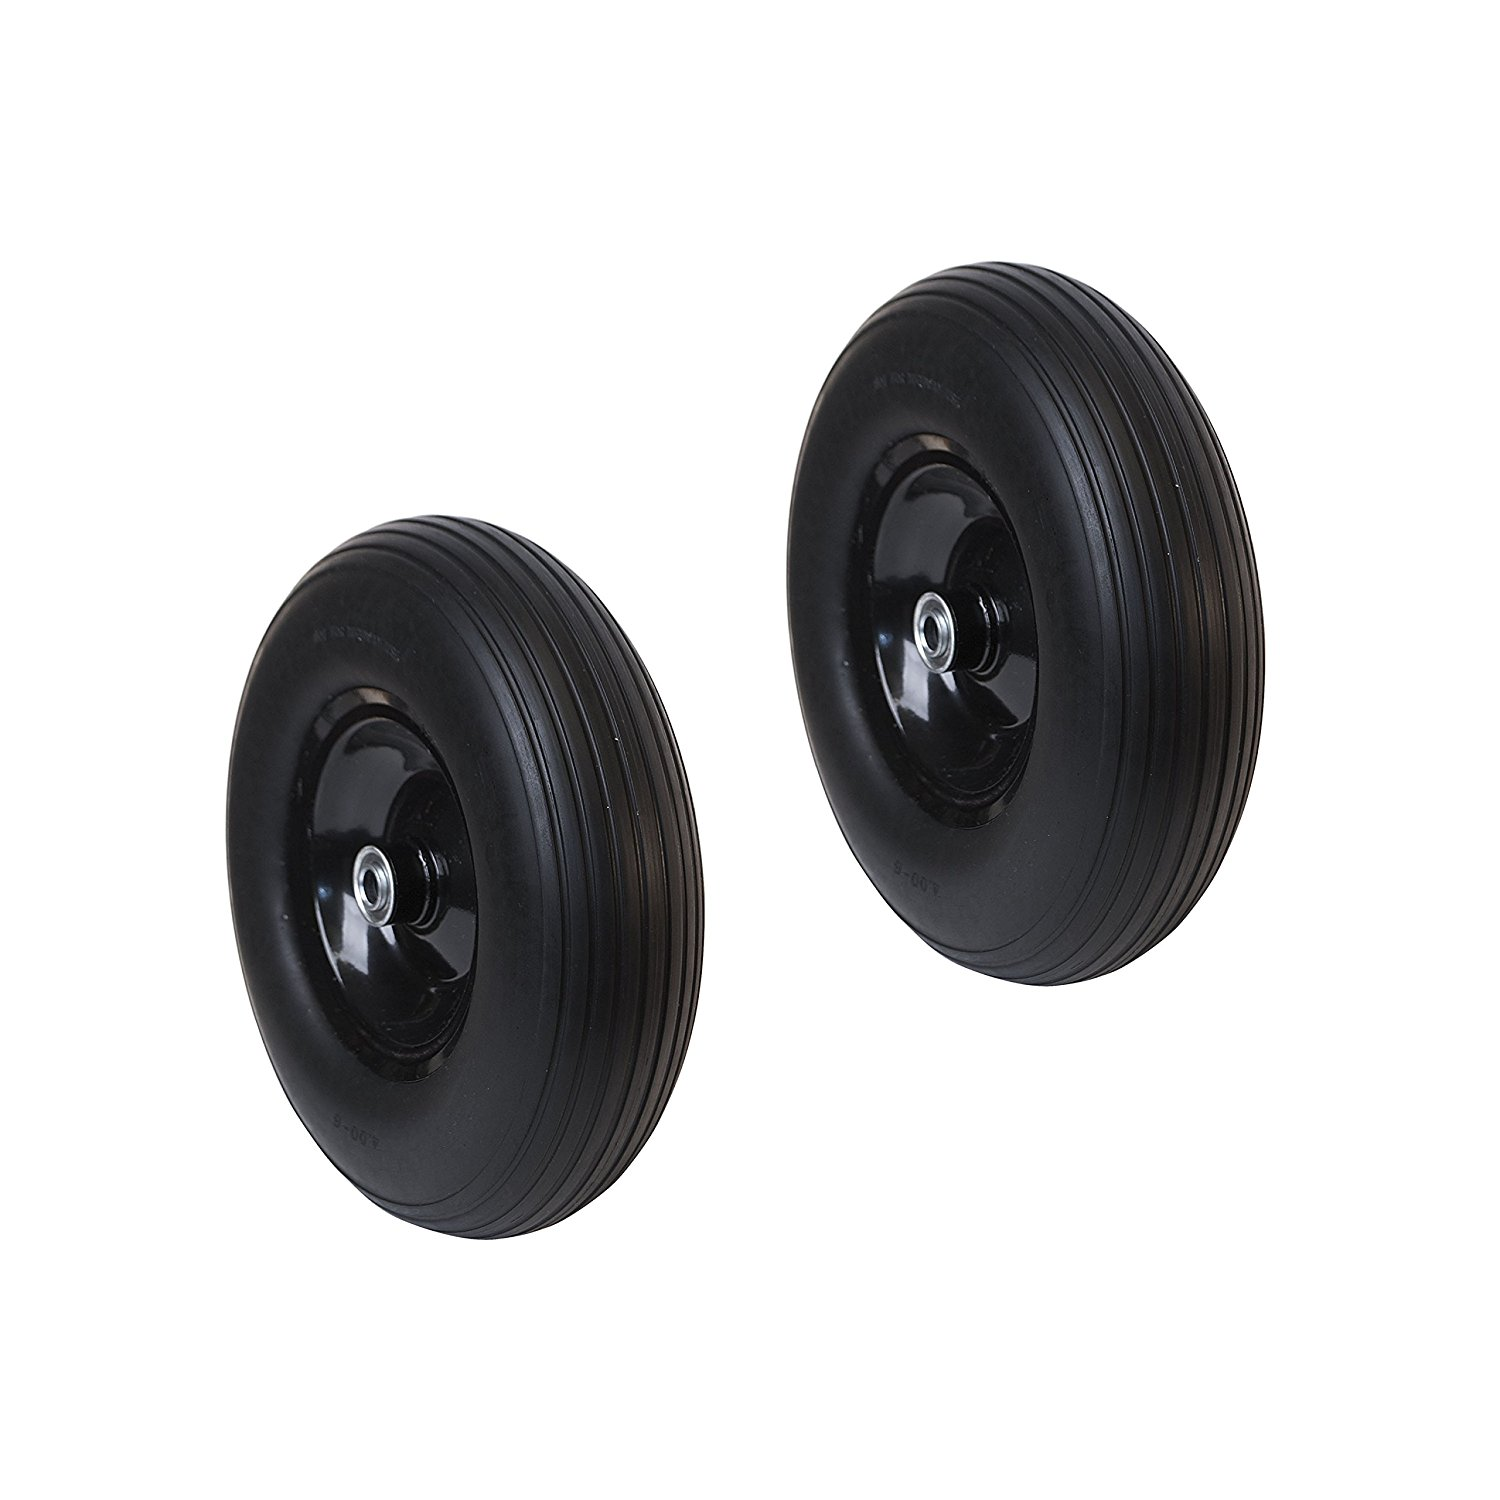 2WBNF13 Anti Flat Replacement Ribbed Wheels for Wheelbarrow 13 Inch No Flat Tire